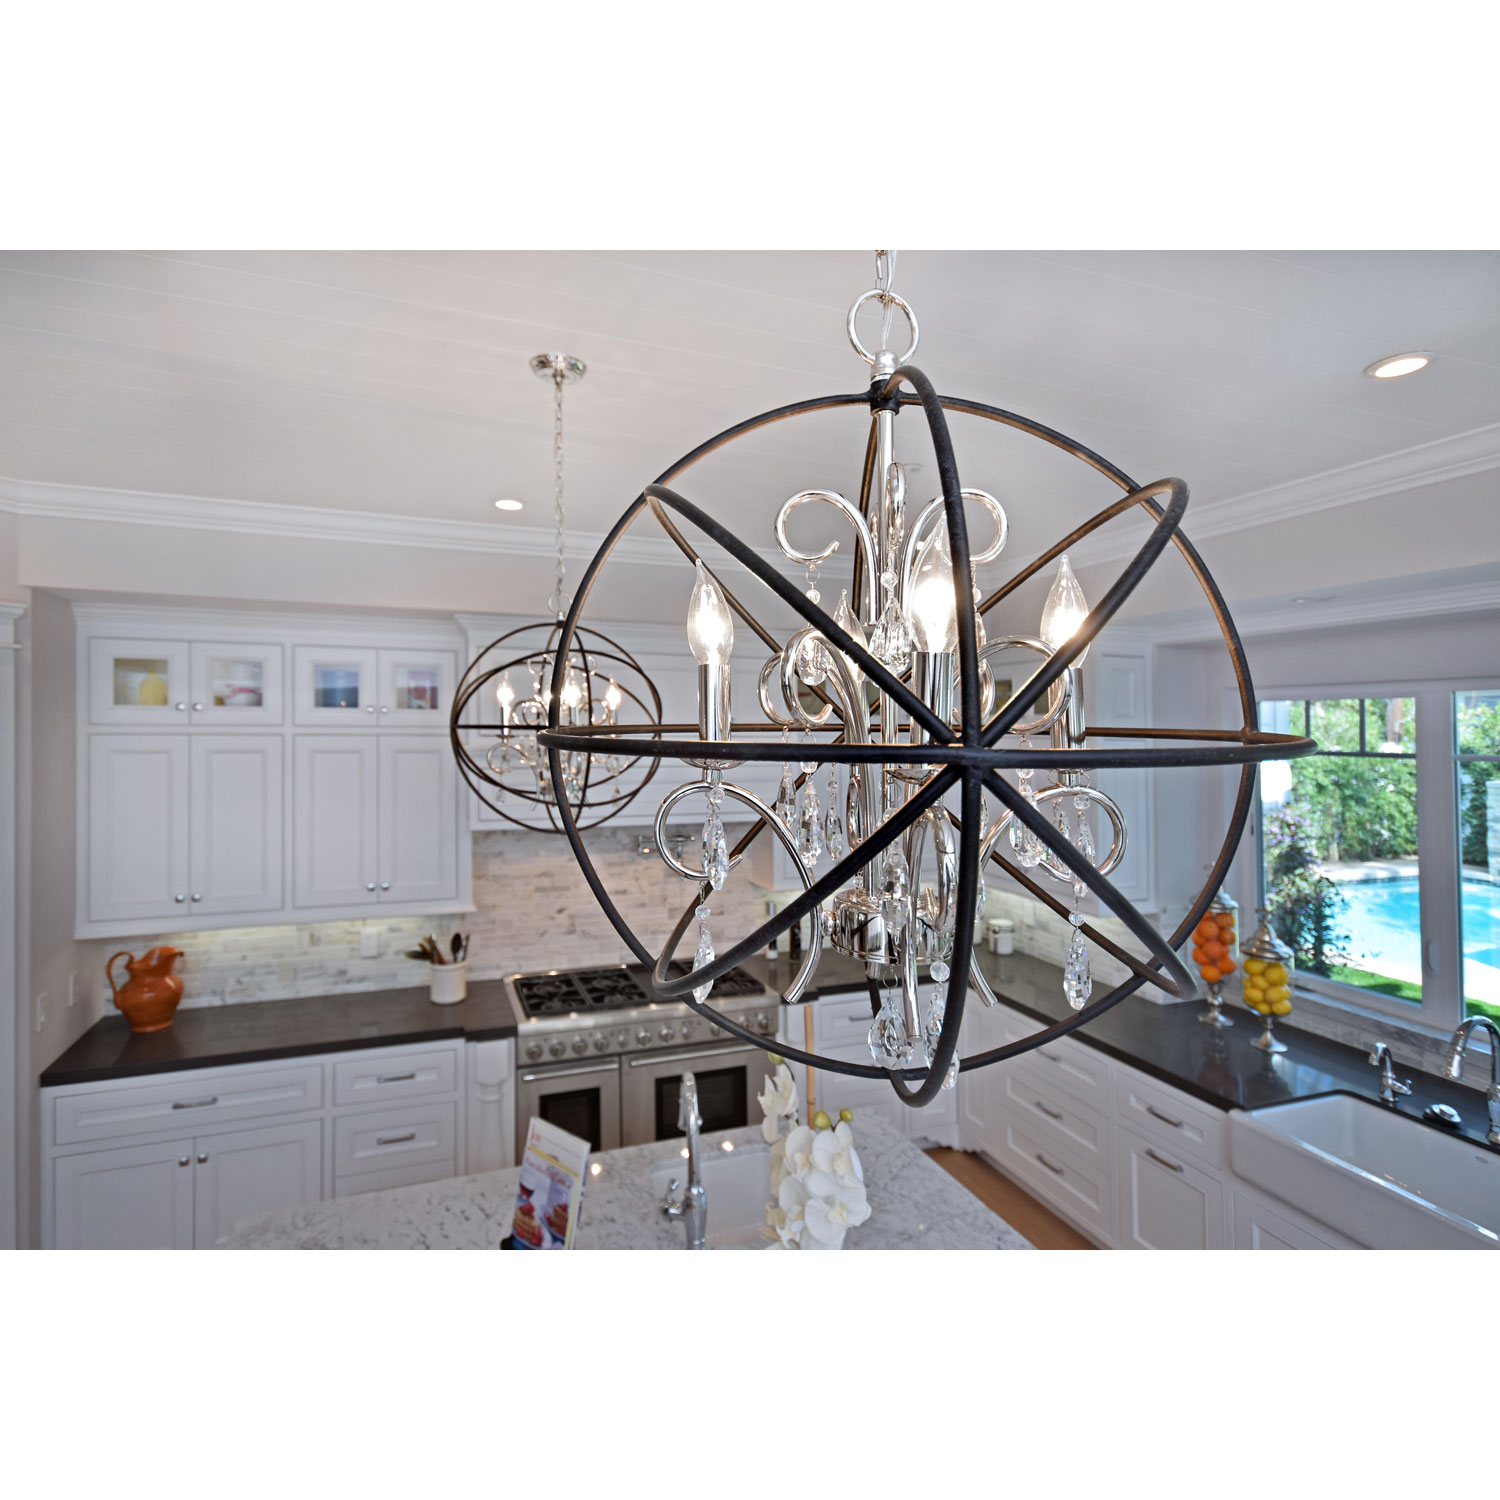 Brilliant unique design of orbit chandelier with iron or stainless for ceiling lighting decorating ideas